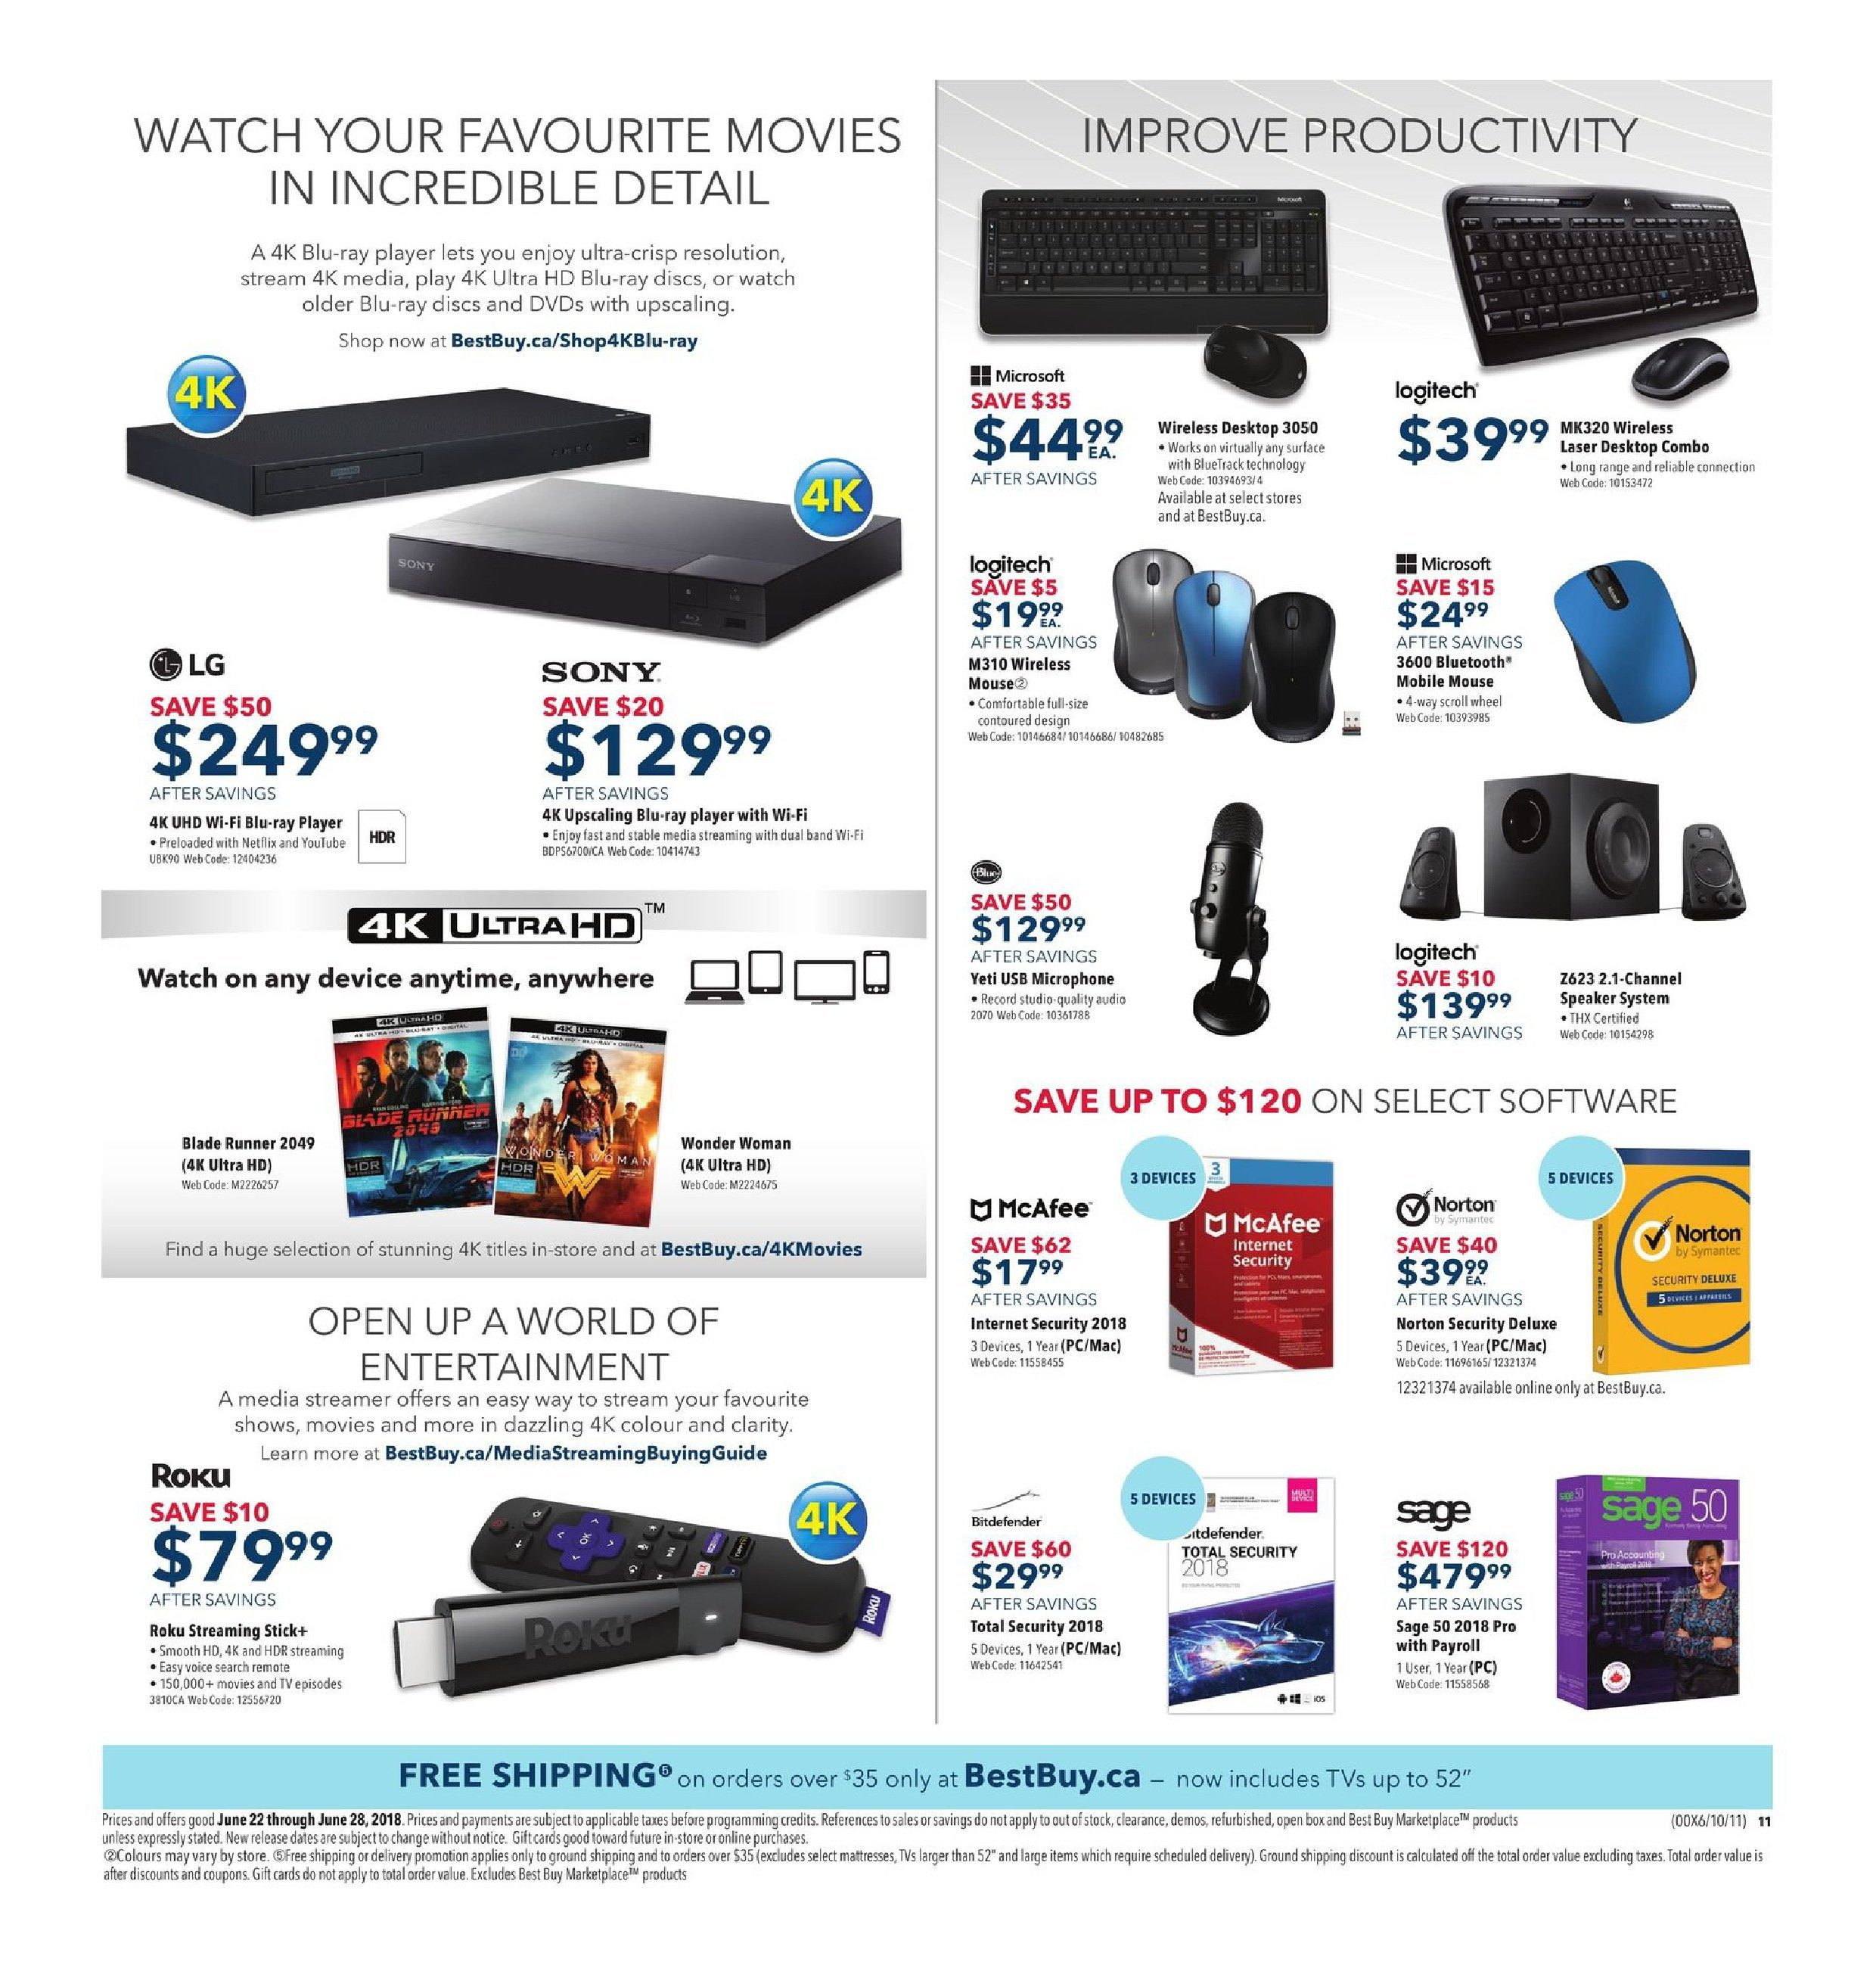 Best Buy Weekly Flyer Dont Miss These Hot Deals Jun 22 My Dryer Maytaghas A Three Wire Electric Cord The Wires 28